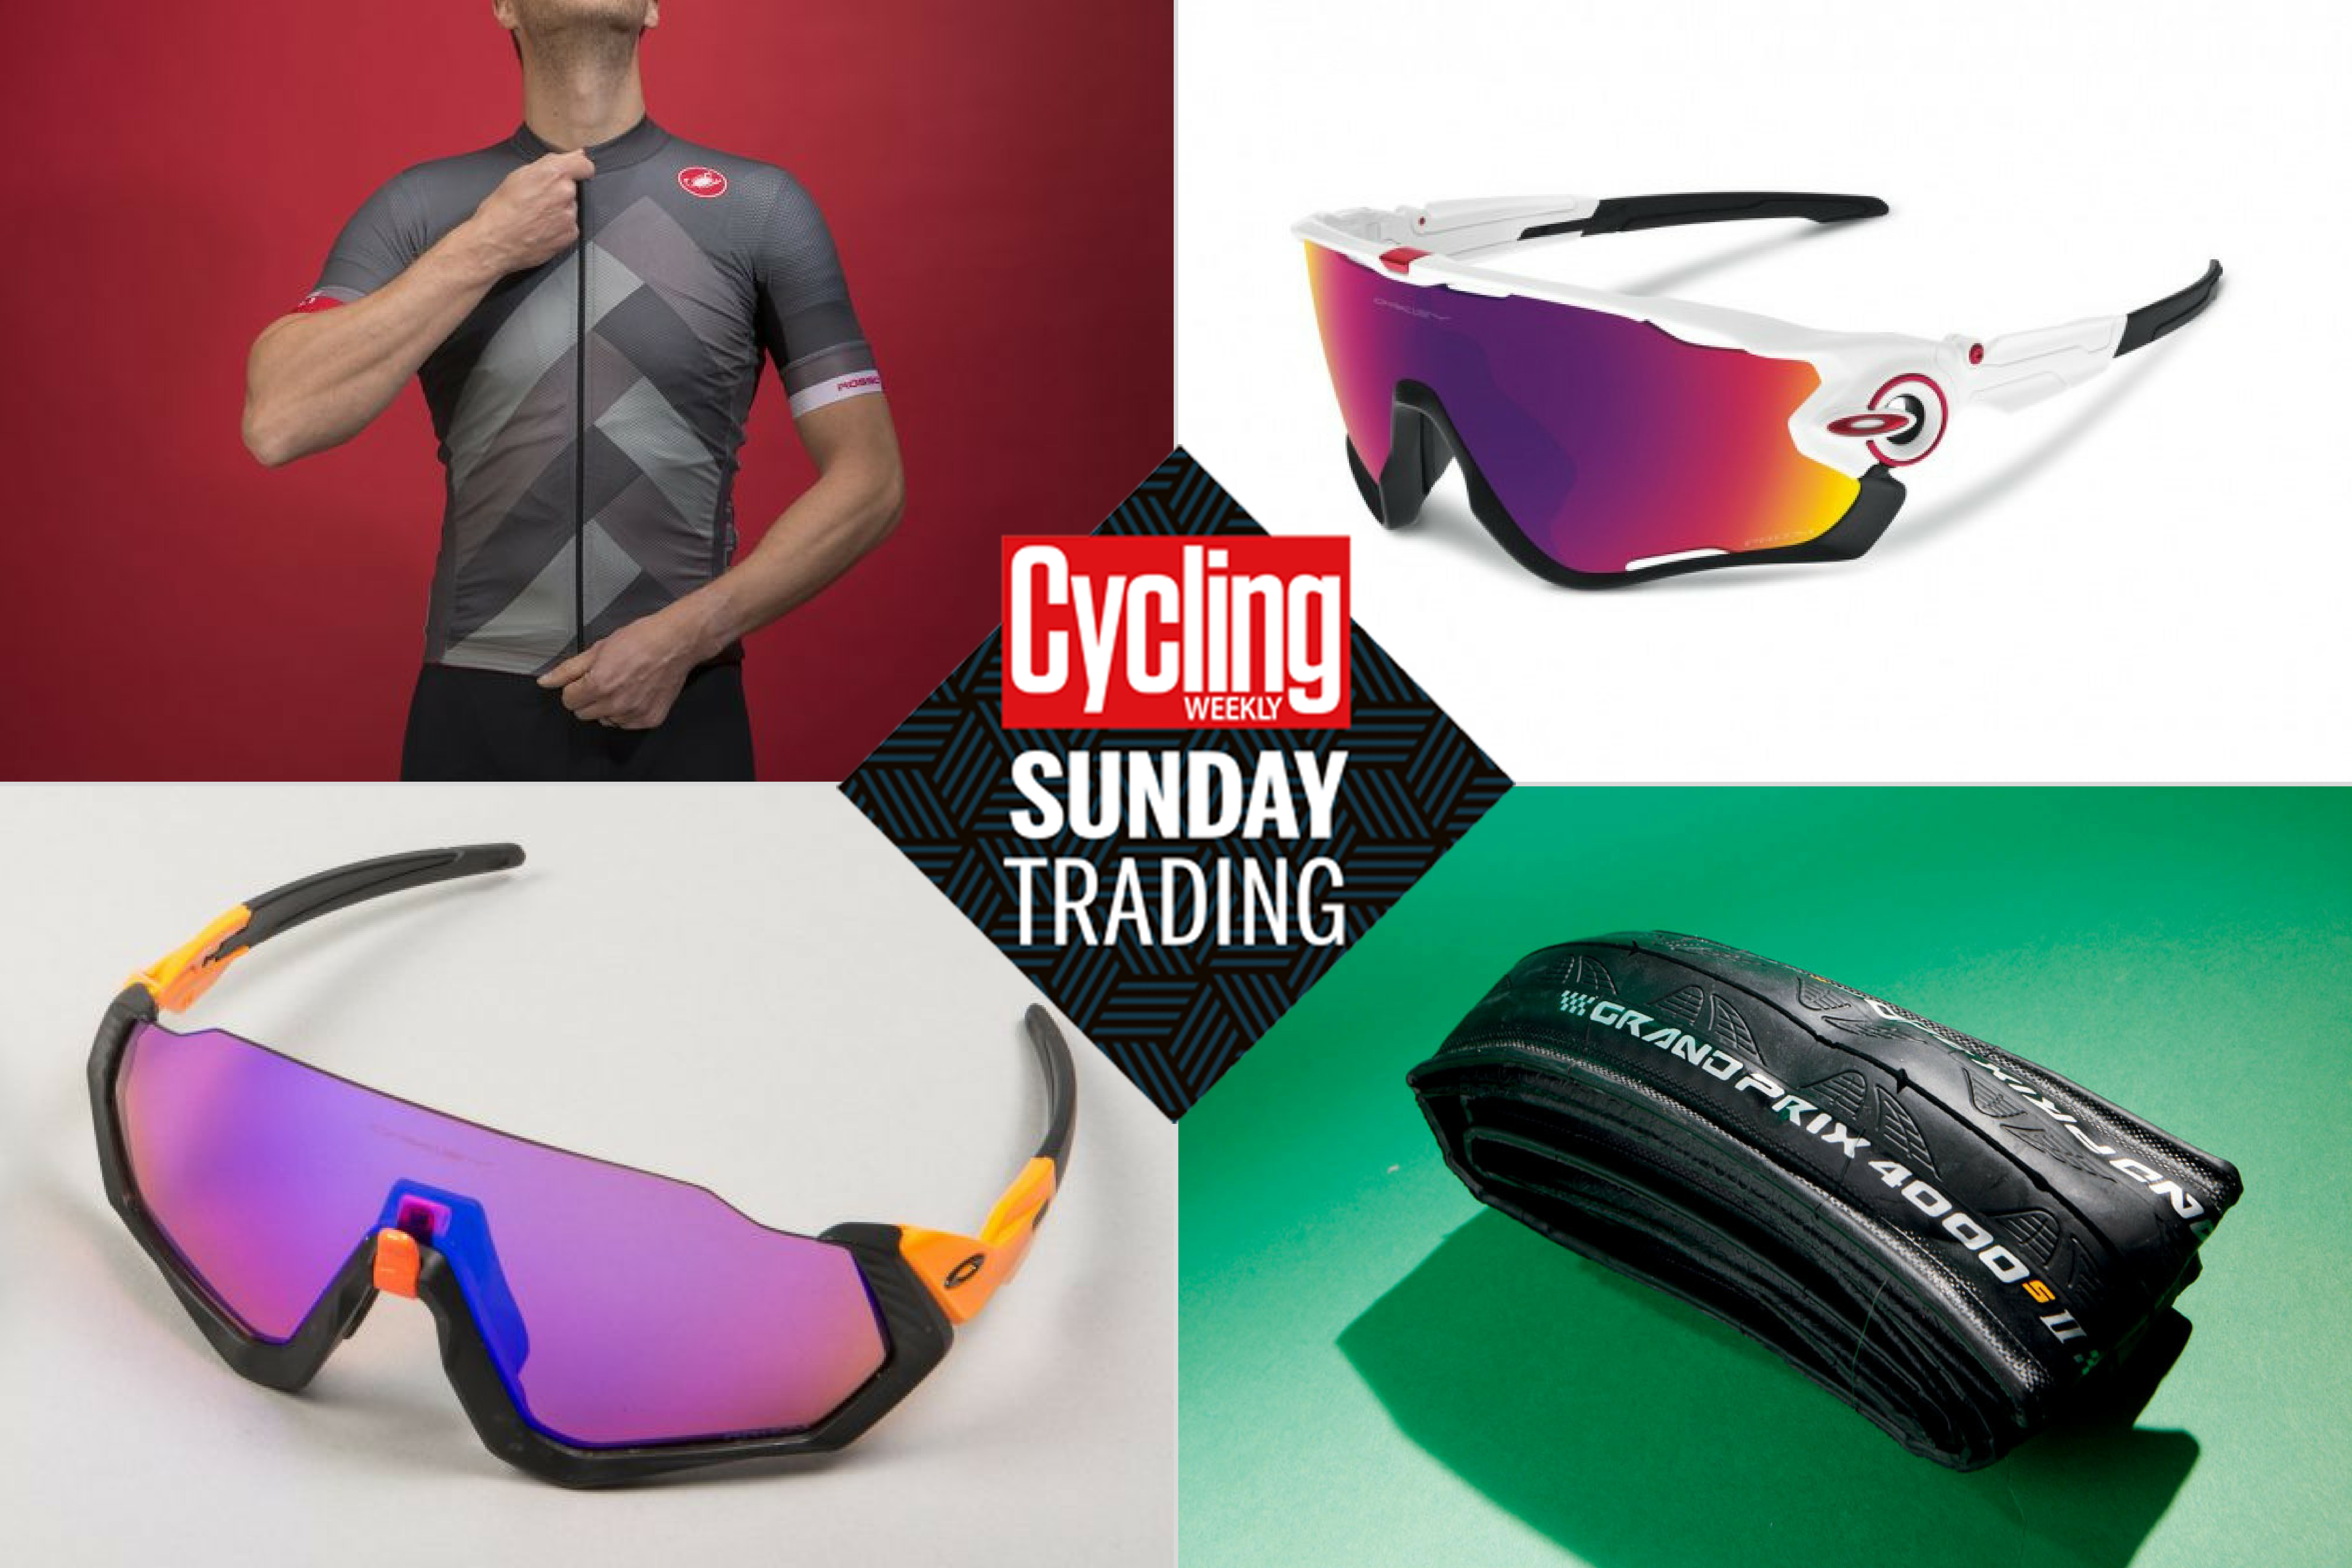 116b97078868 ... is inspired by the good weather we've been treated to over the last week.  To celebrate the sunshine we've got multiple deals on Oakley sunglasses, ...